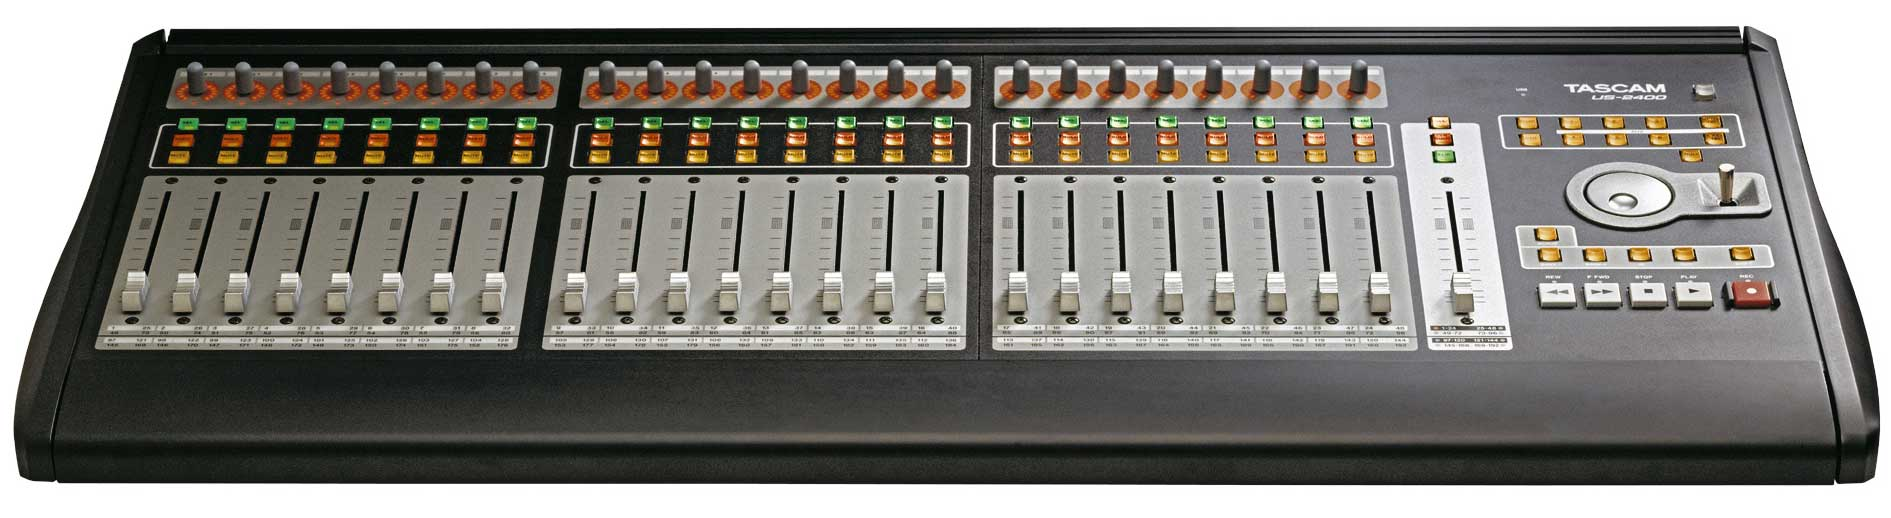 Tascam Us 2400 Tascam Us 2400 Daw Controller With 25